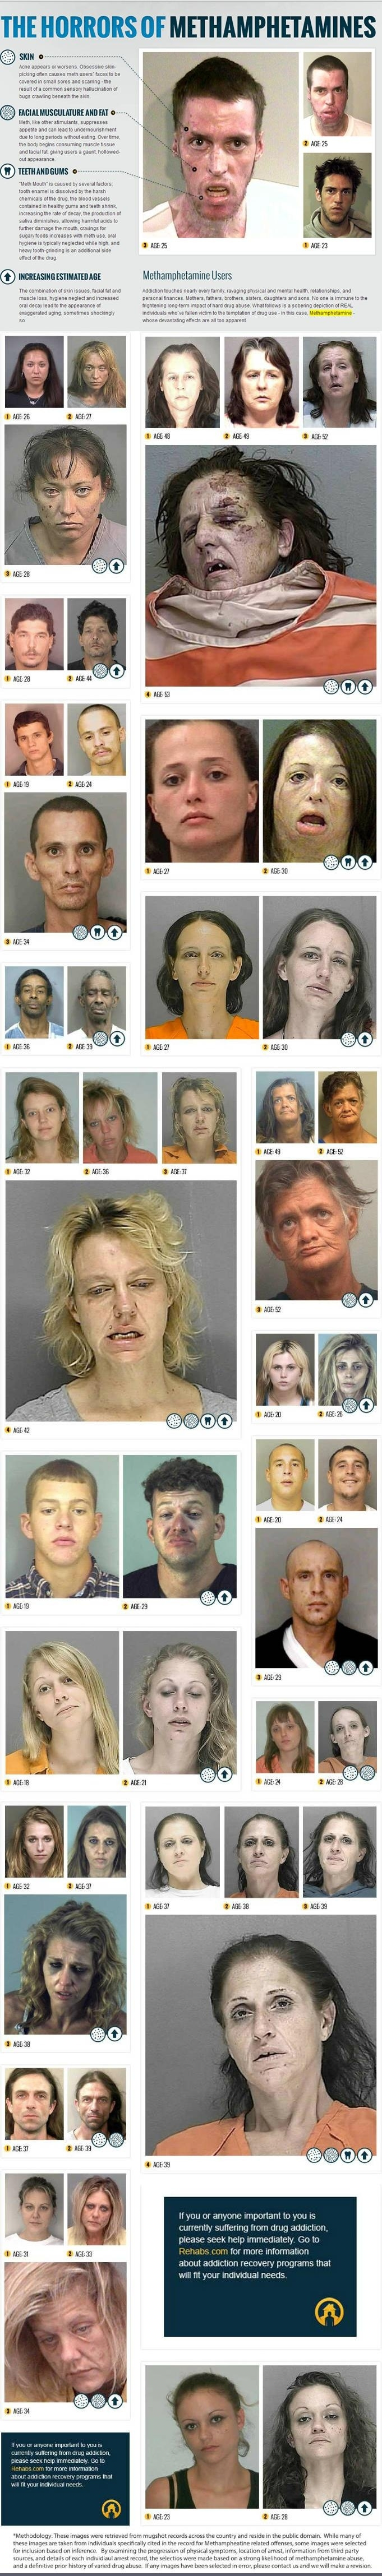 the power of meth My name is crystal meth my powers are awesome just try me and see try me  twice and your soul will belong to me once i possess you, you'll steal and you'll.